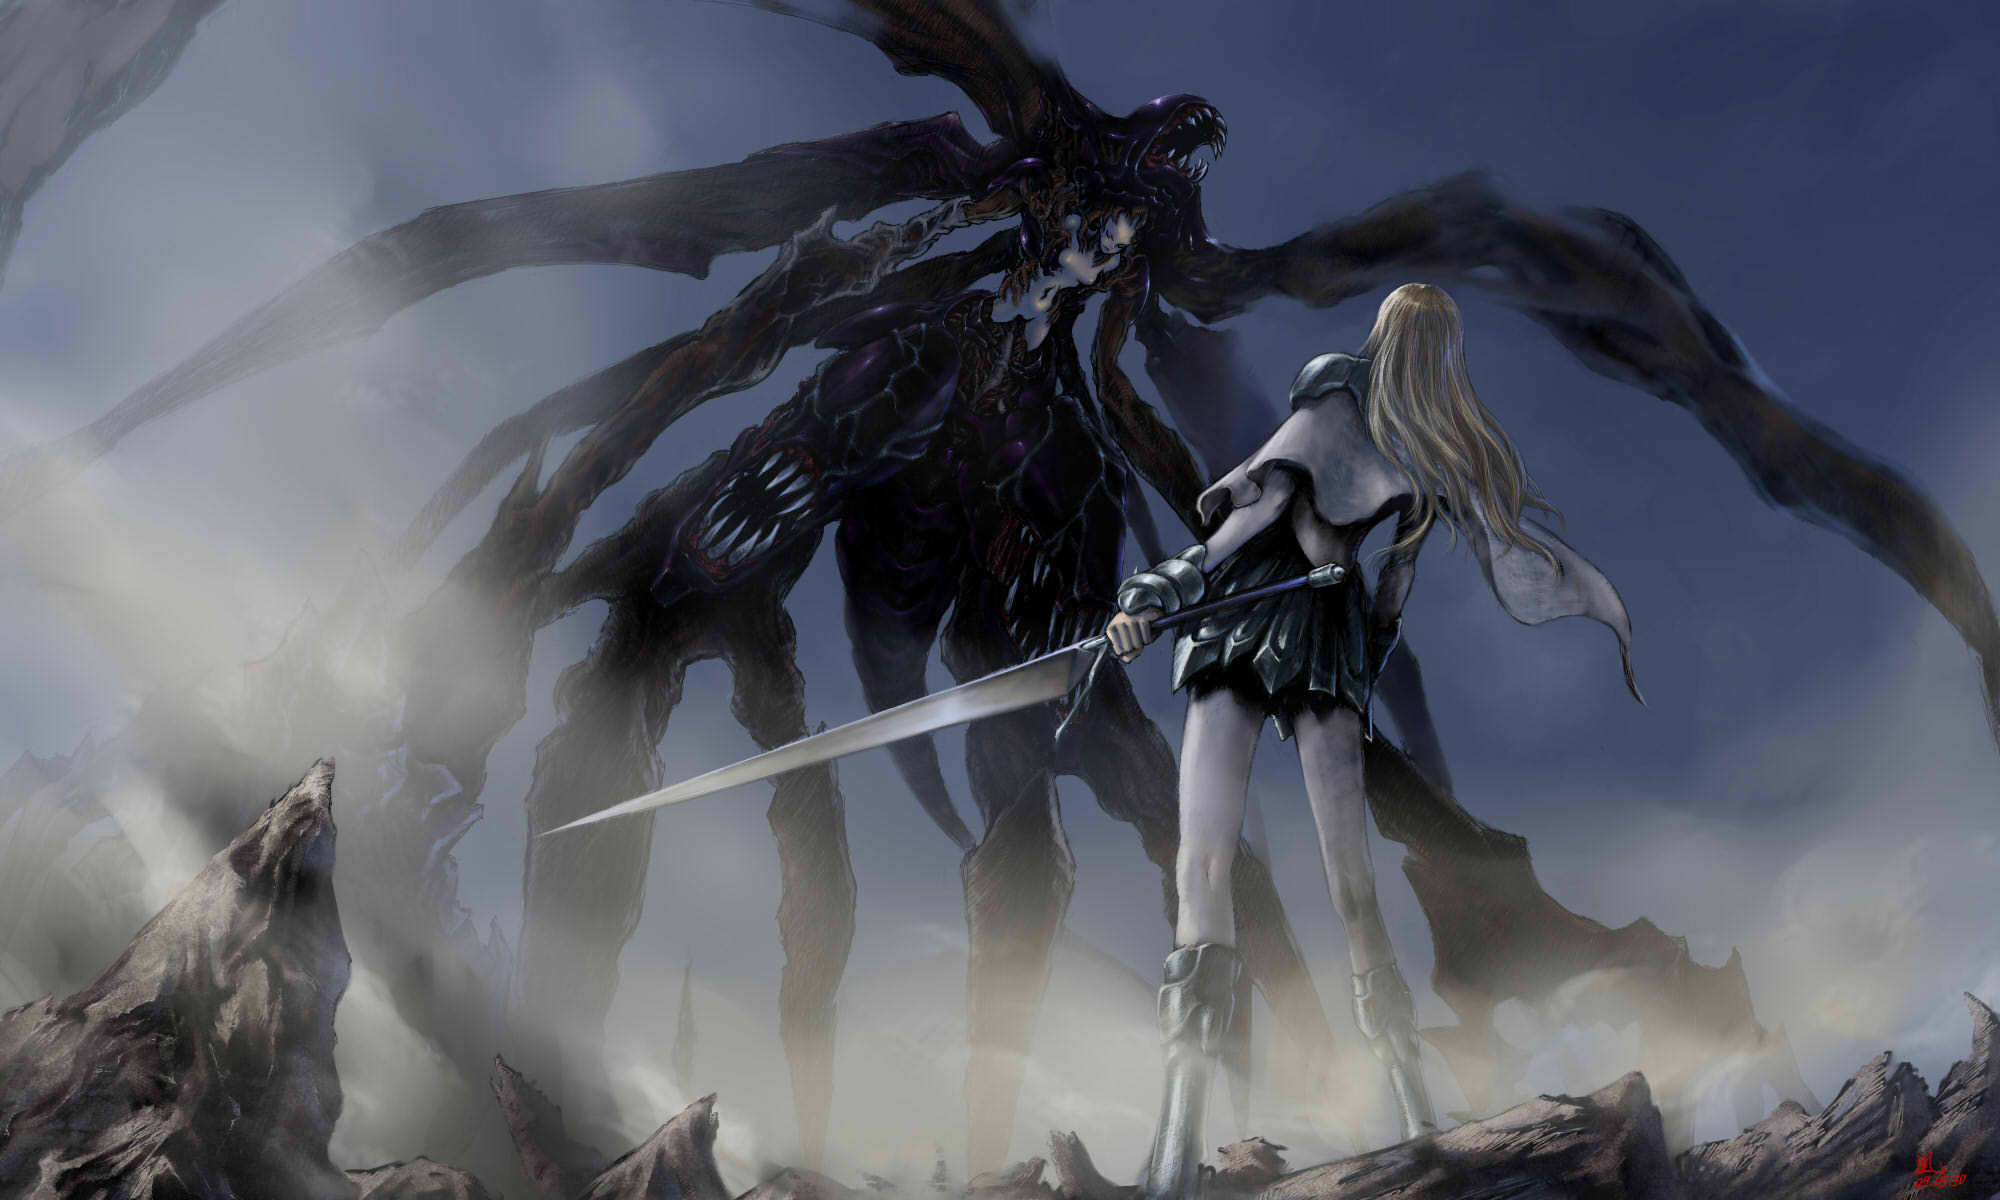 Claymore HD Wallpaper  Background Image  2000x1200  ID:101495  Wallpaper Abyss